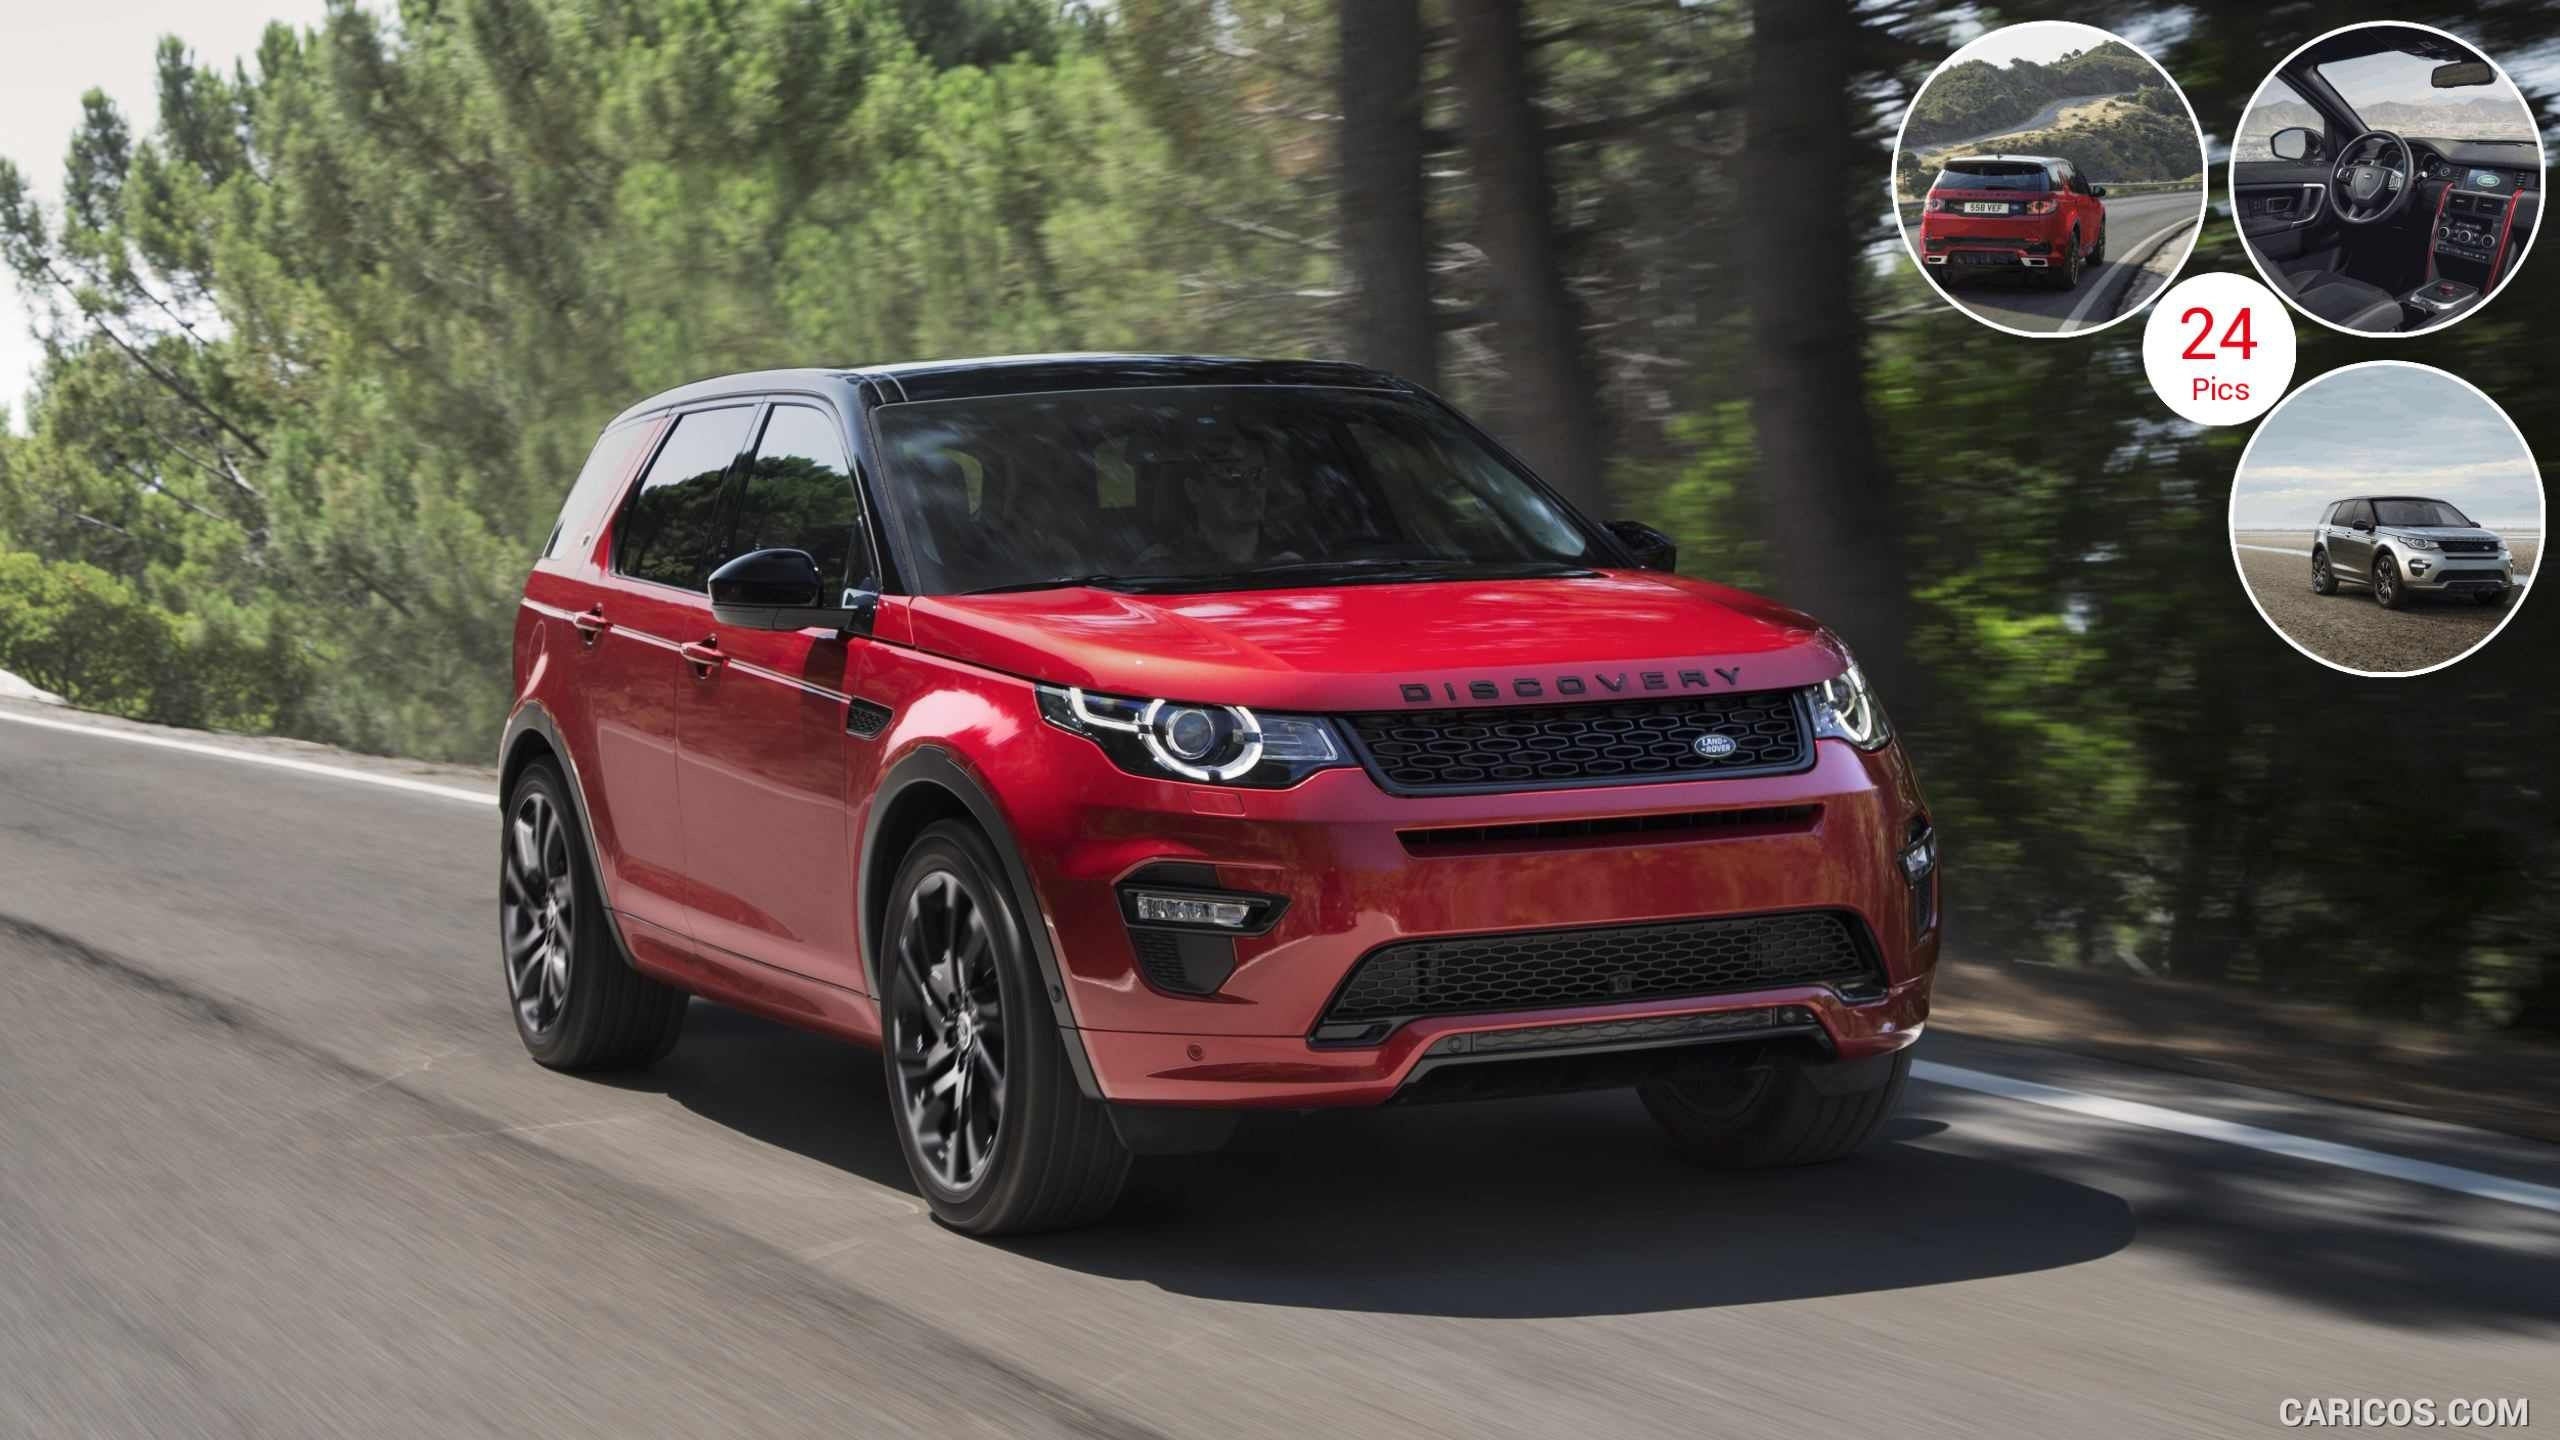 2016 Land Rover Discovery Sport Hse Dynamic Lux Land Rover Discovery Sport Land Rover Land Rover Discovery